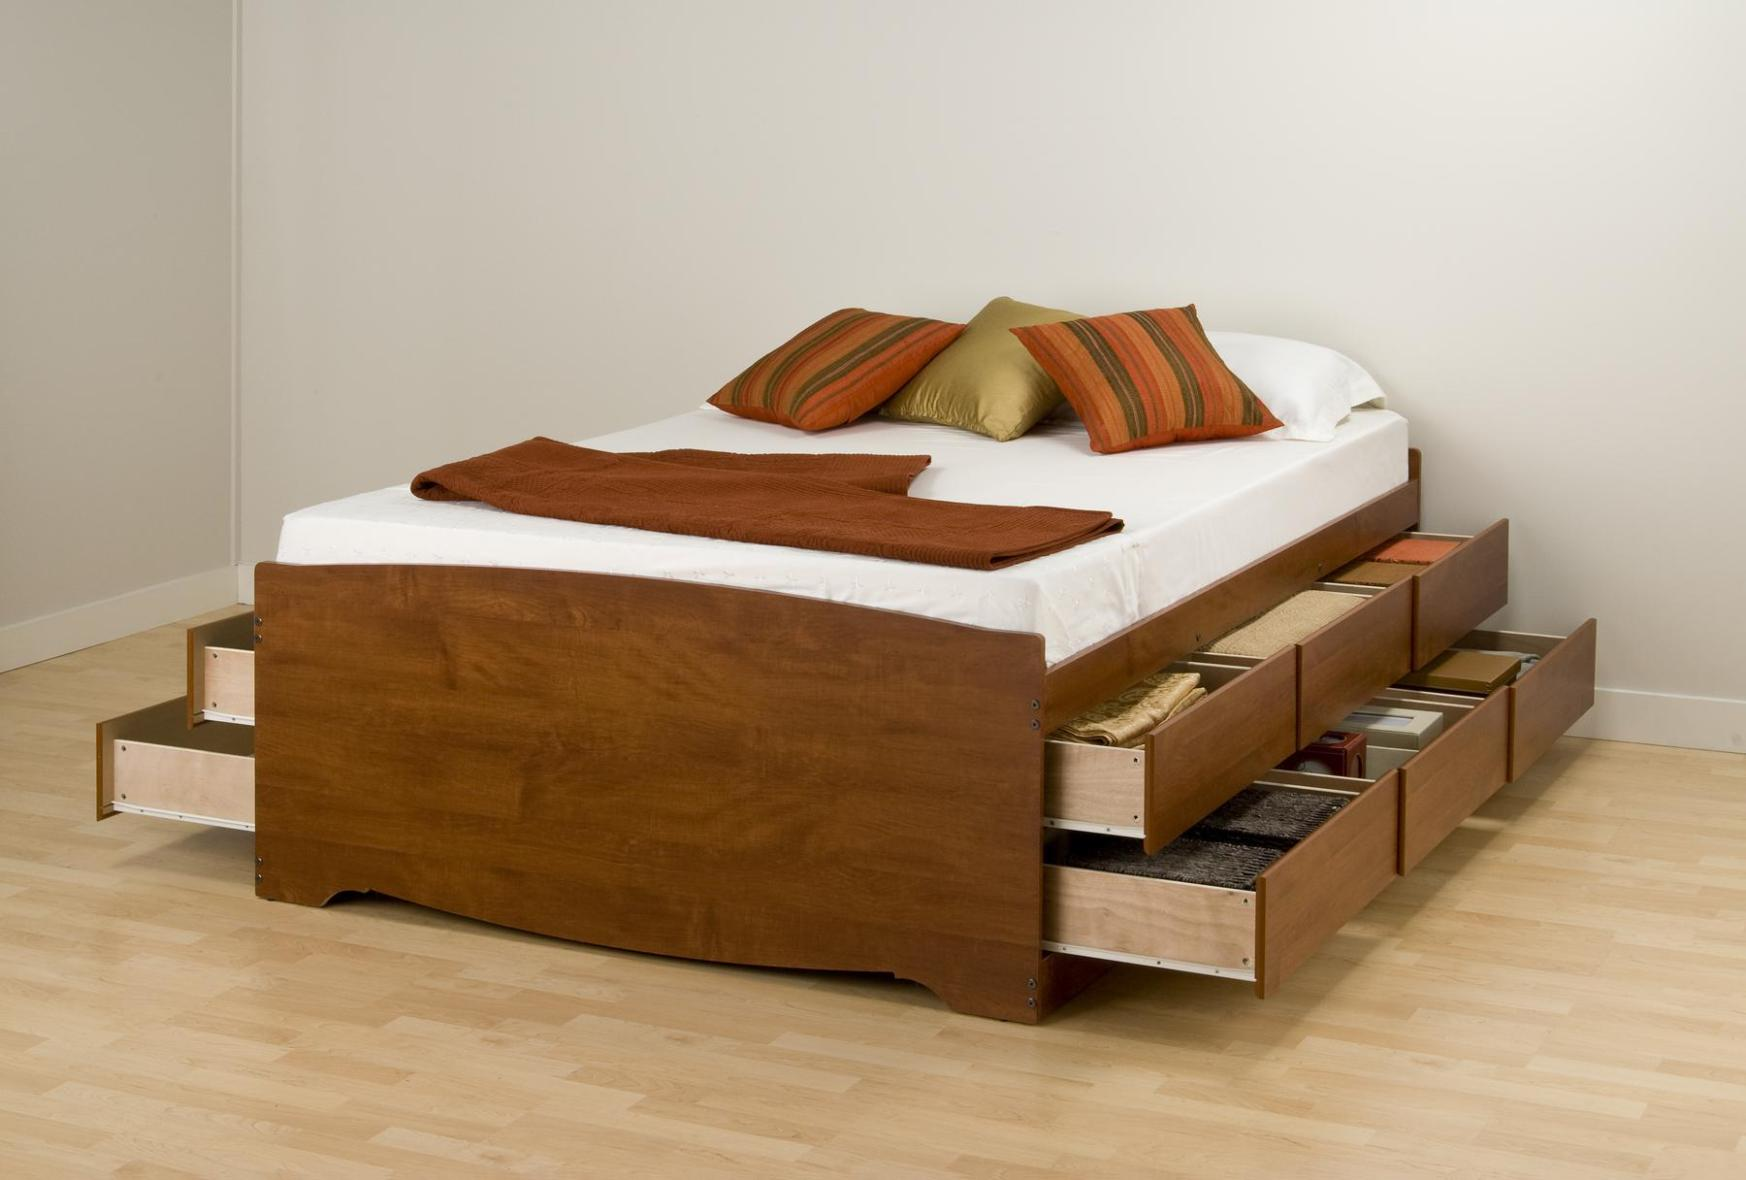 Image of: Queen Bed Frame With Drawers Building Plans